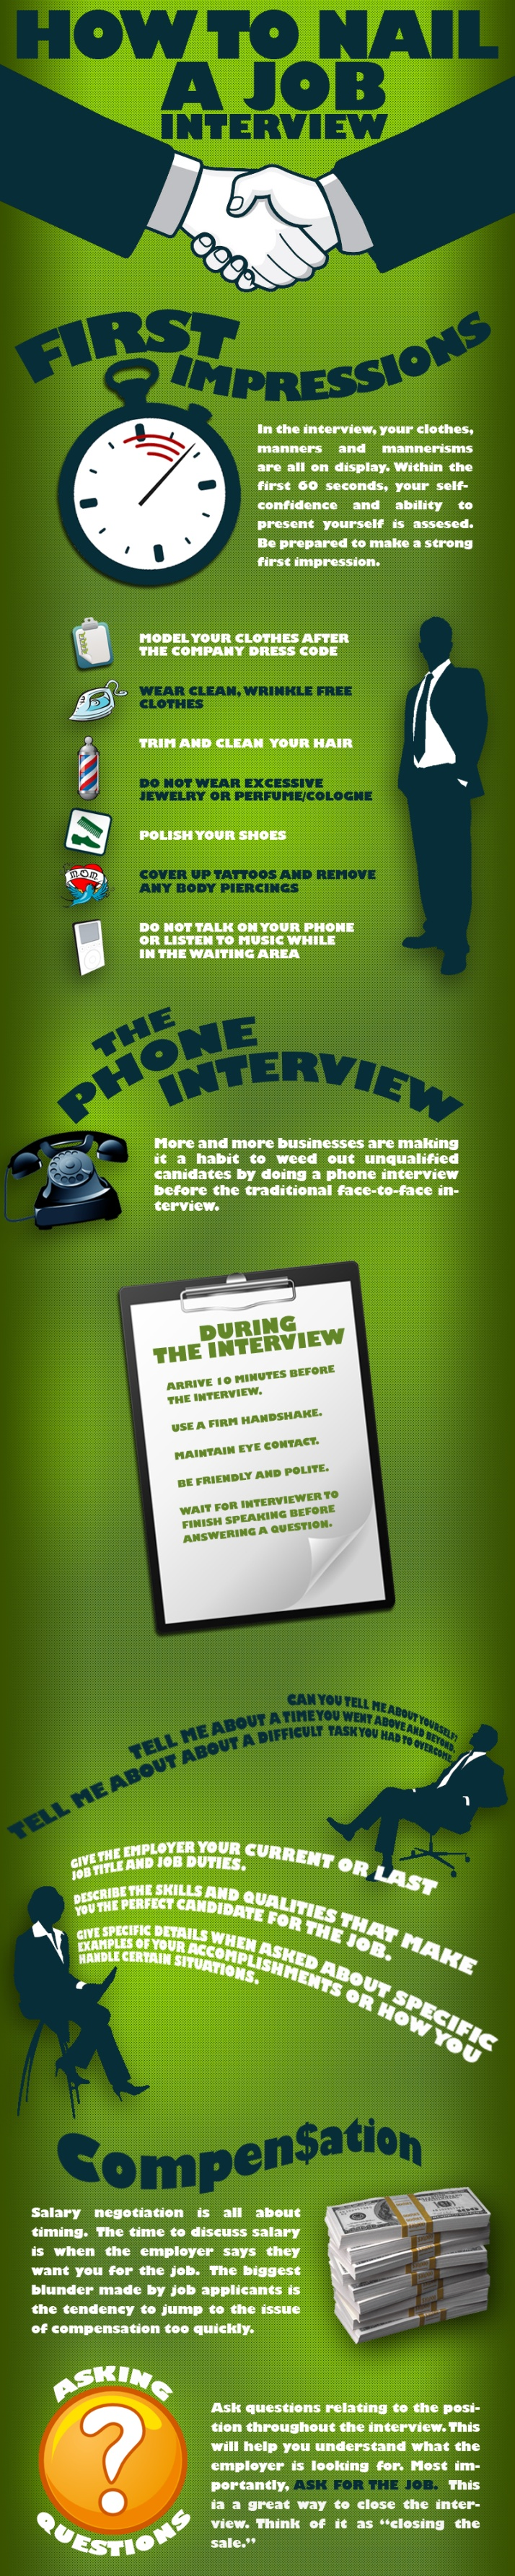 best images about interview tips interview body how to succeed during an interview interviews careers job re pinned